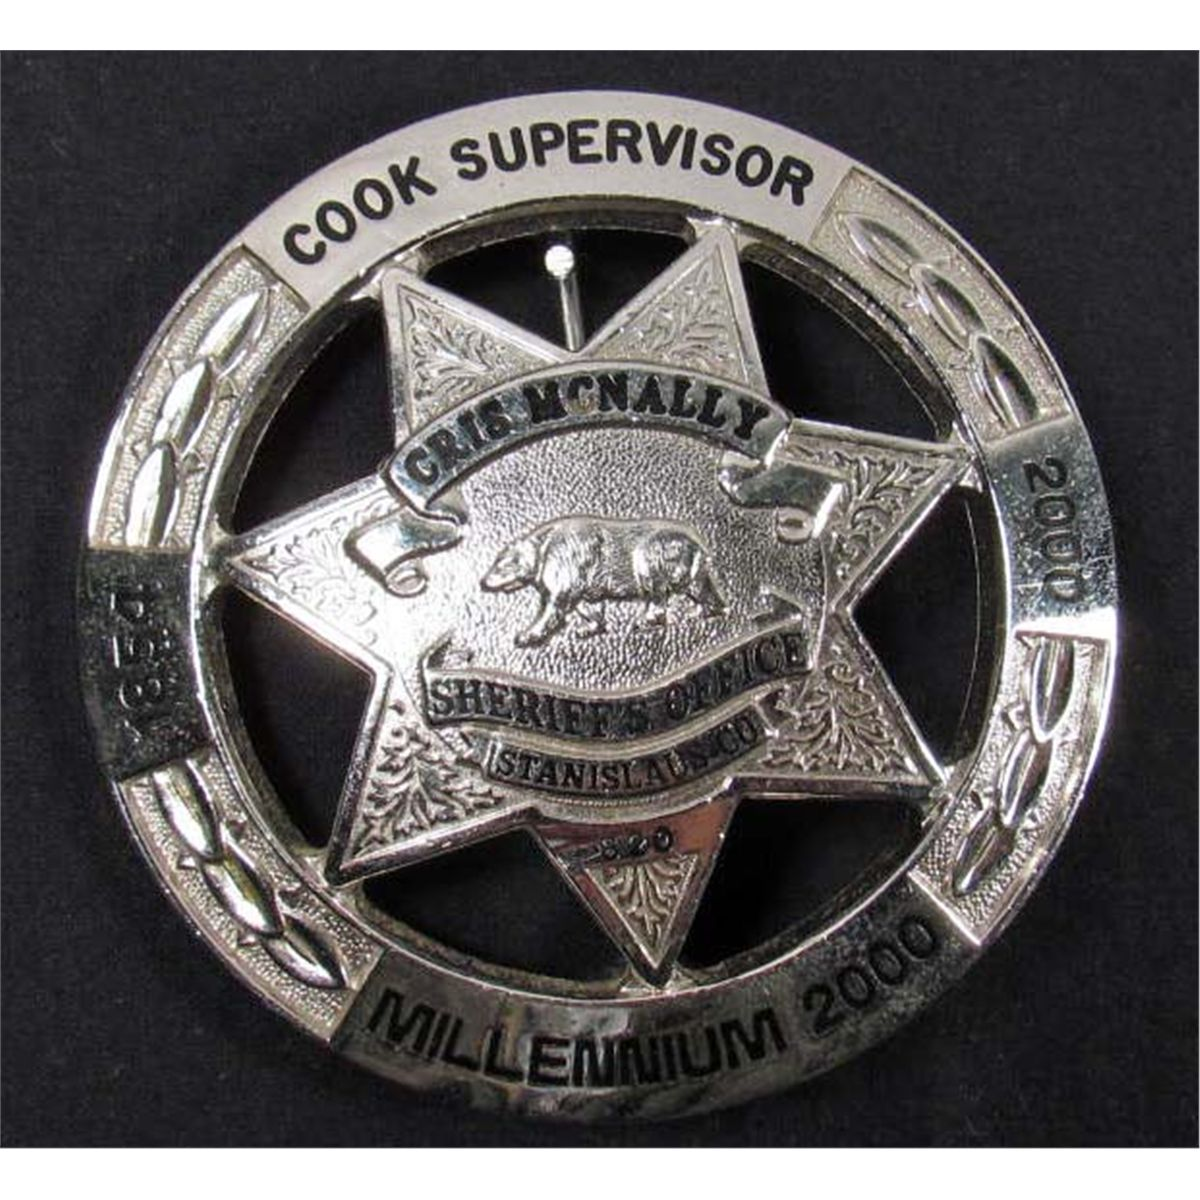 stainislaus county ca cook supervisor millennium 2000 police law badge